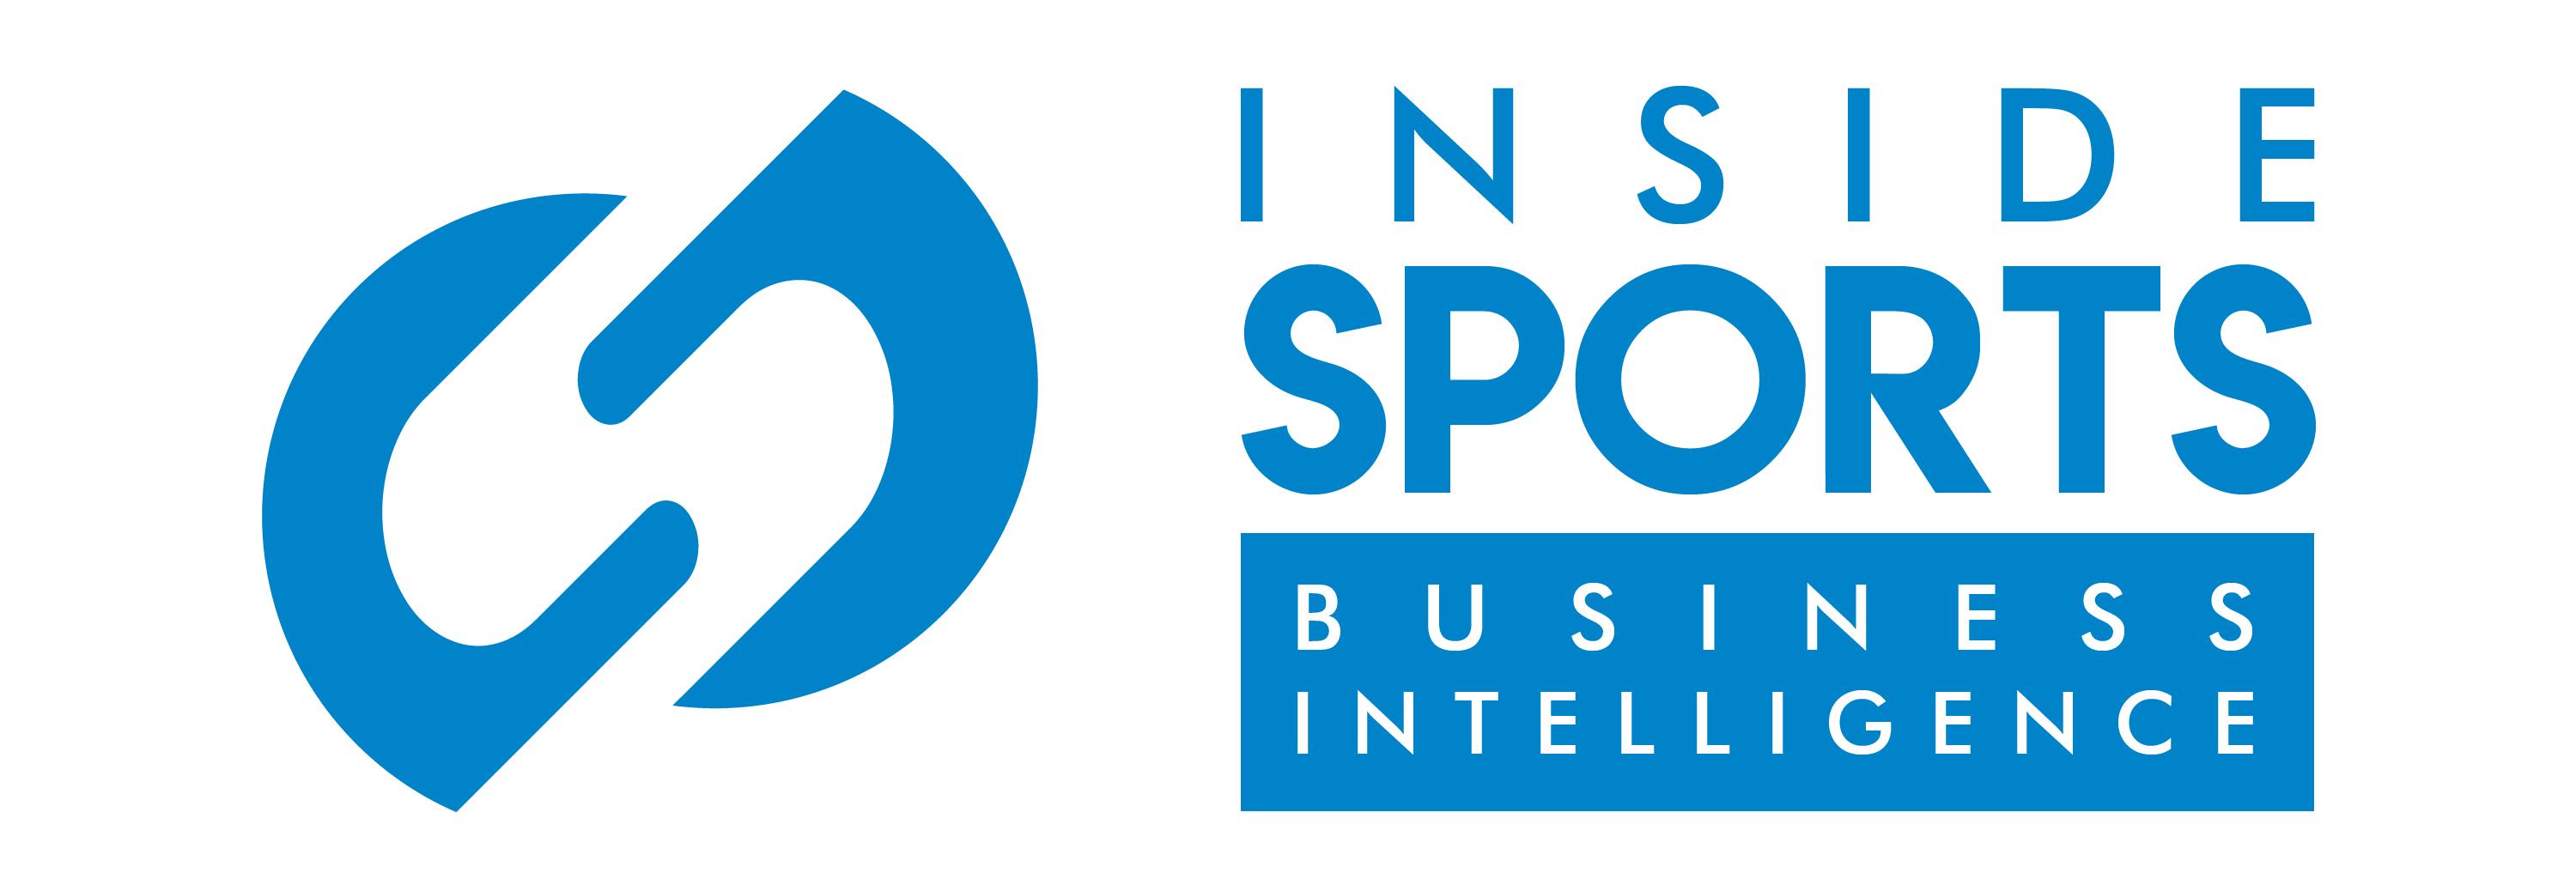 inside sports business intelligence logo